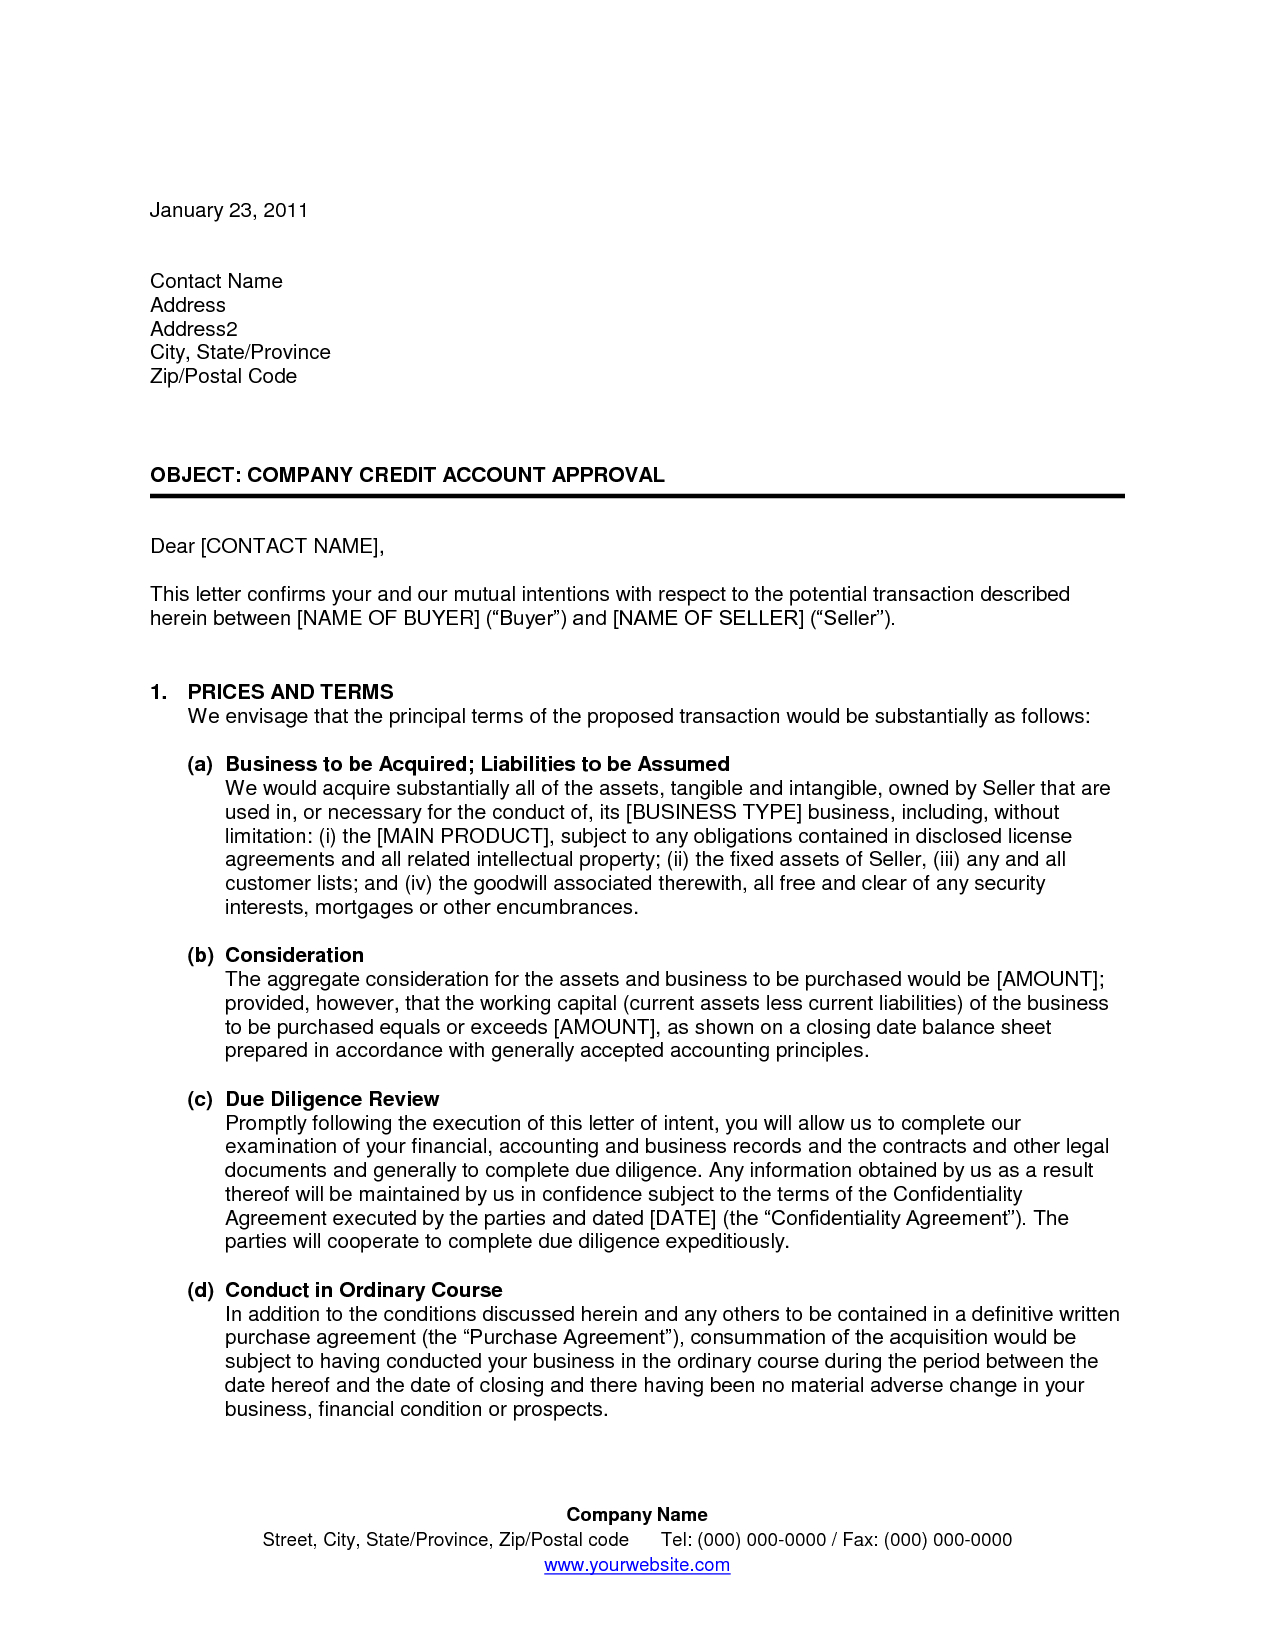 Letter Of Intent to Purchase Business Template - Letter Intent to Buy Business assets Free Purchase Word Document